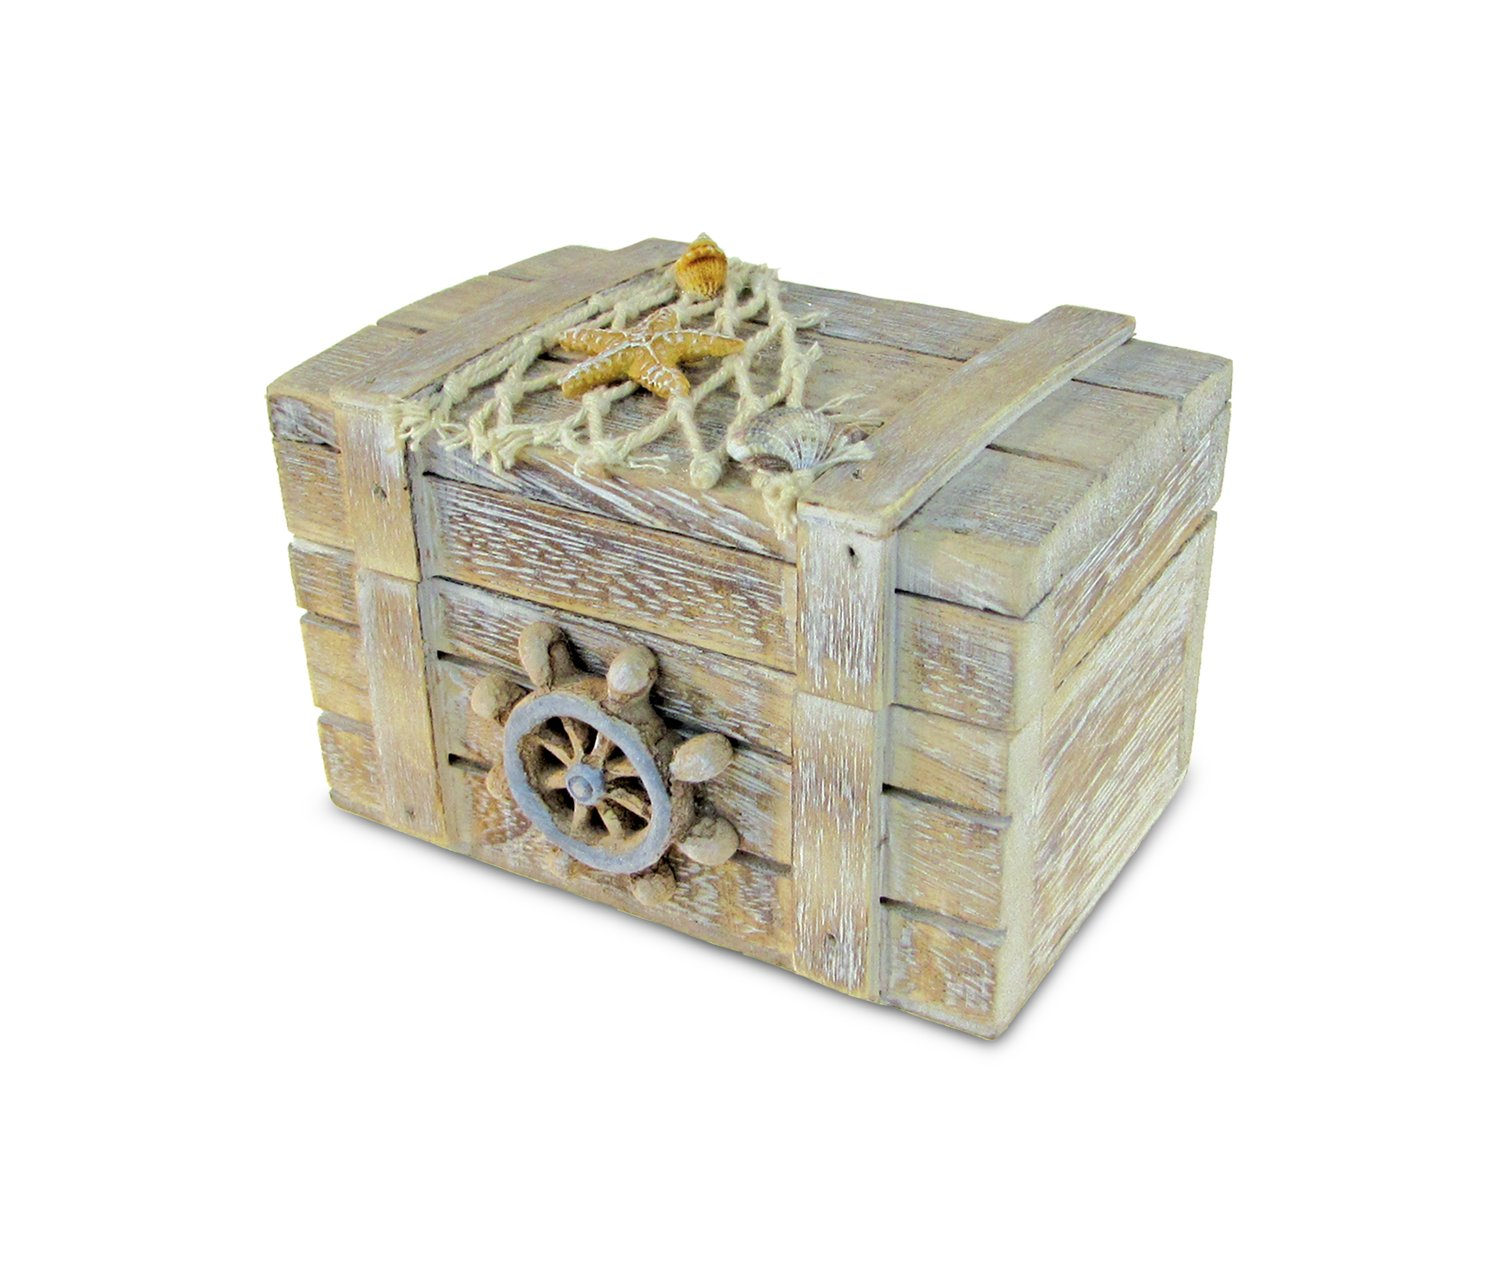 Vintage jewelry box nautical decor beach theme gift for Decor jewelry